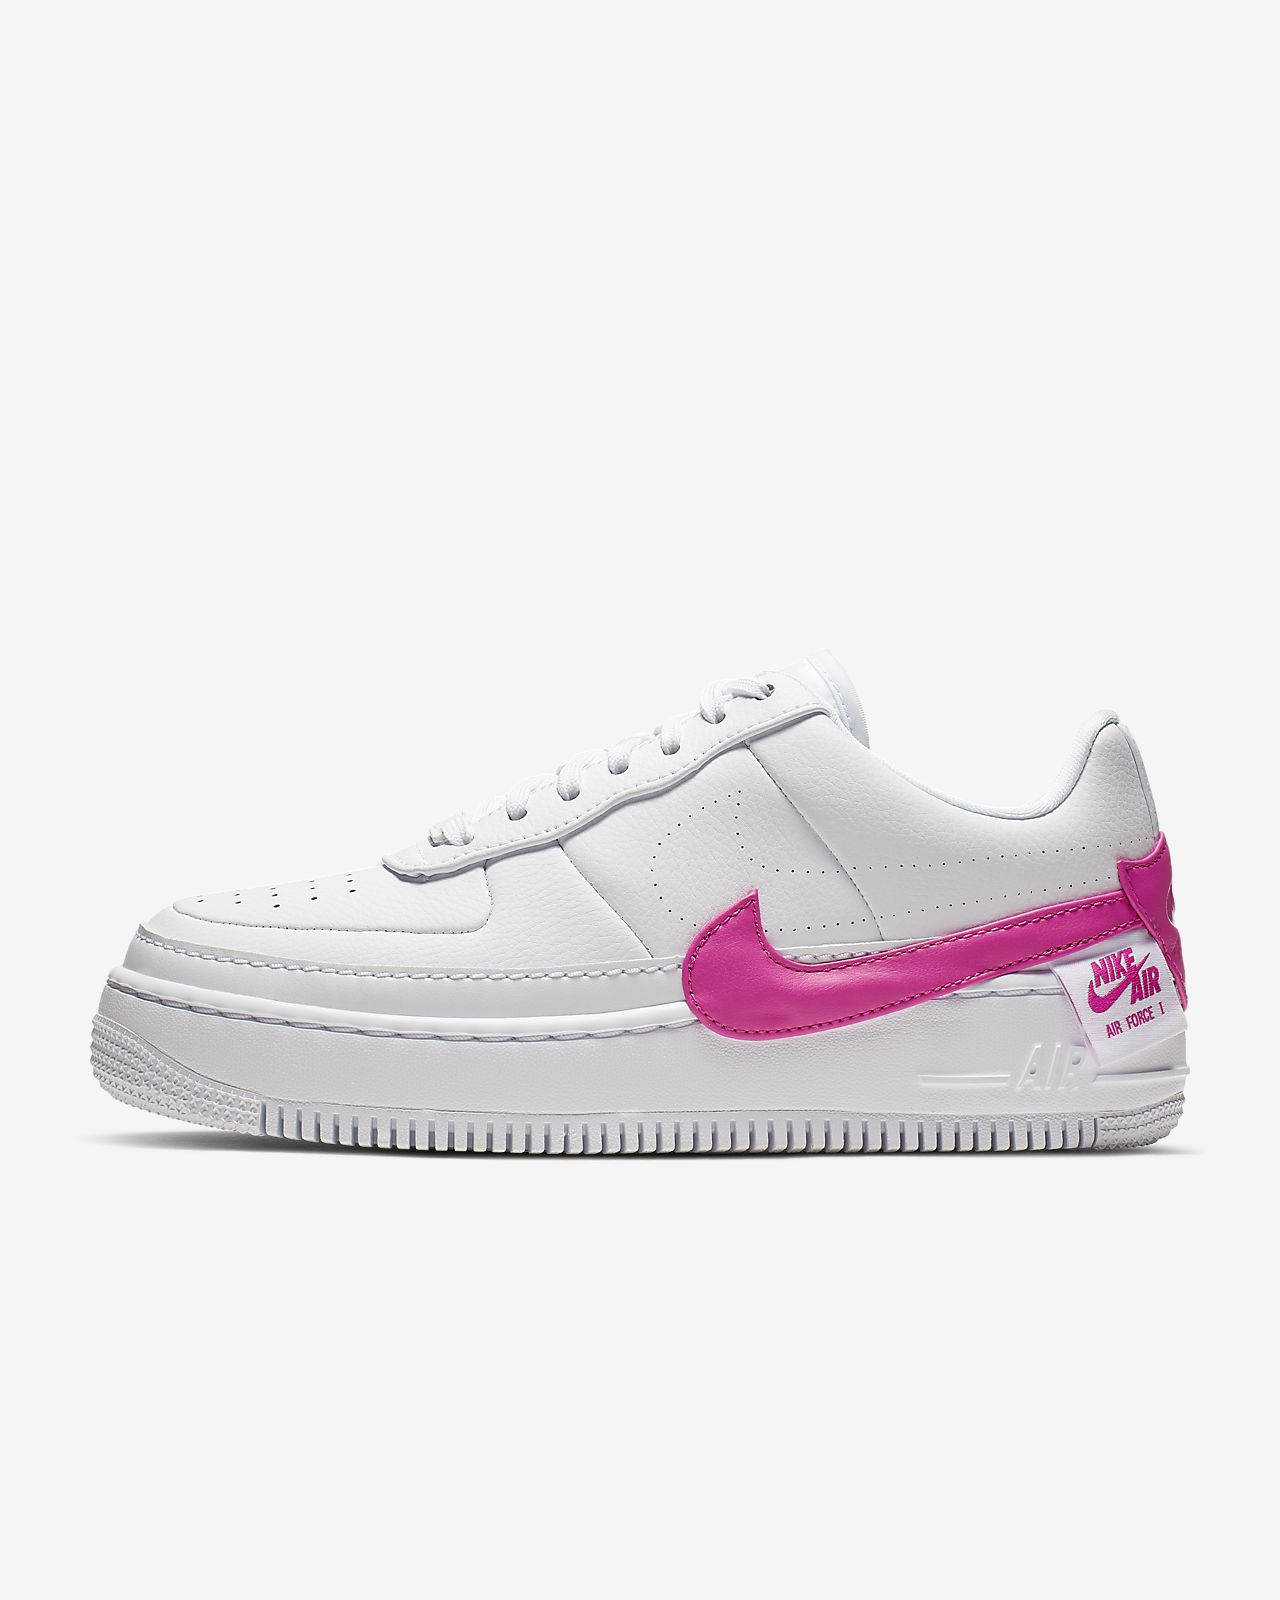 adce30c7457 Nike Air Force 1 Jester XX Shoe. Nike.com